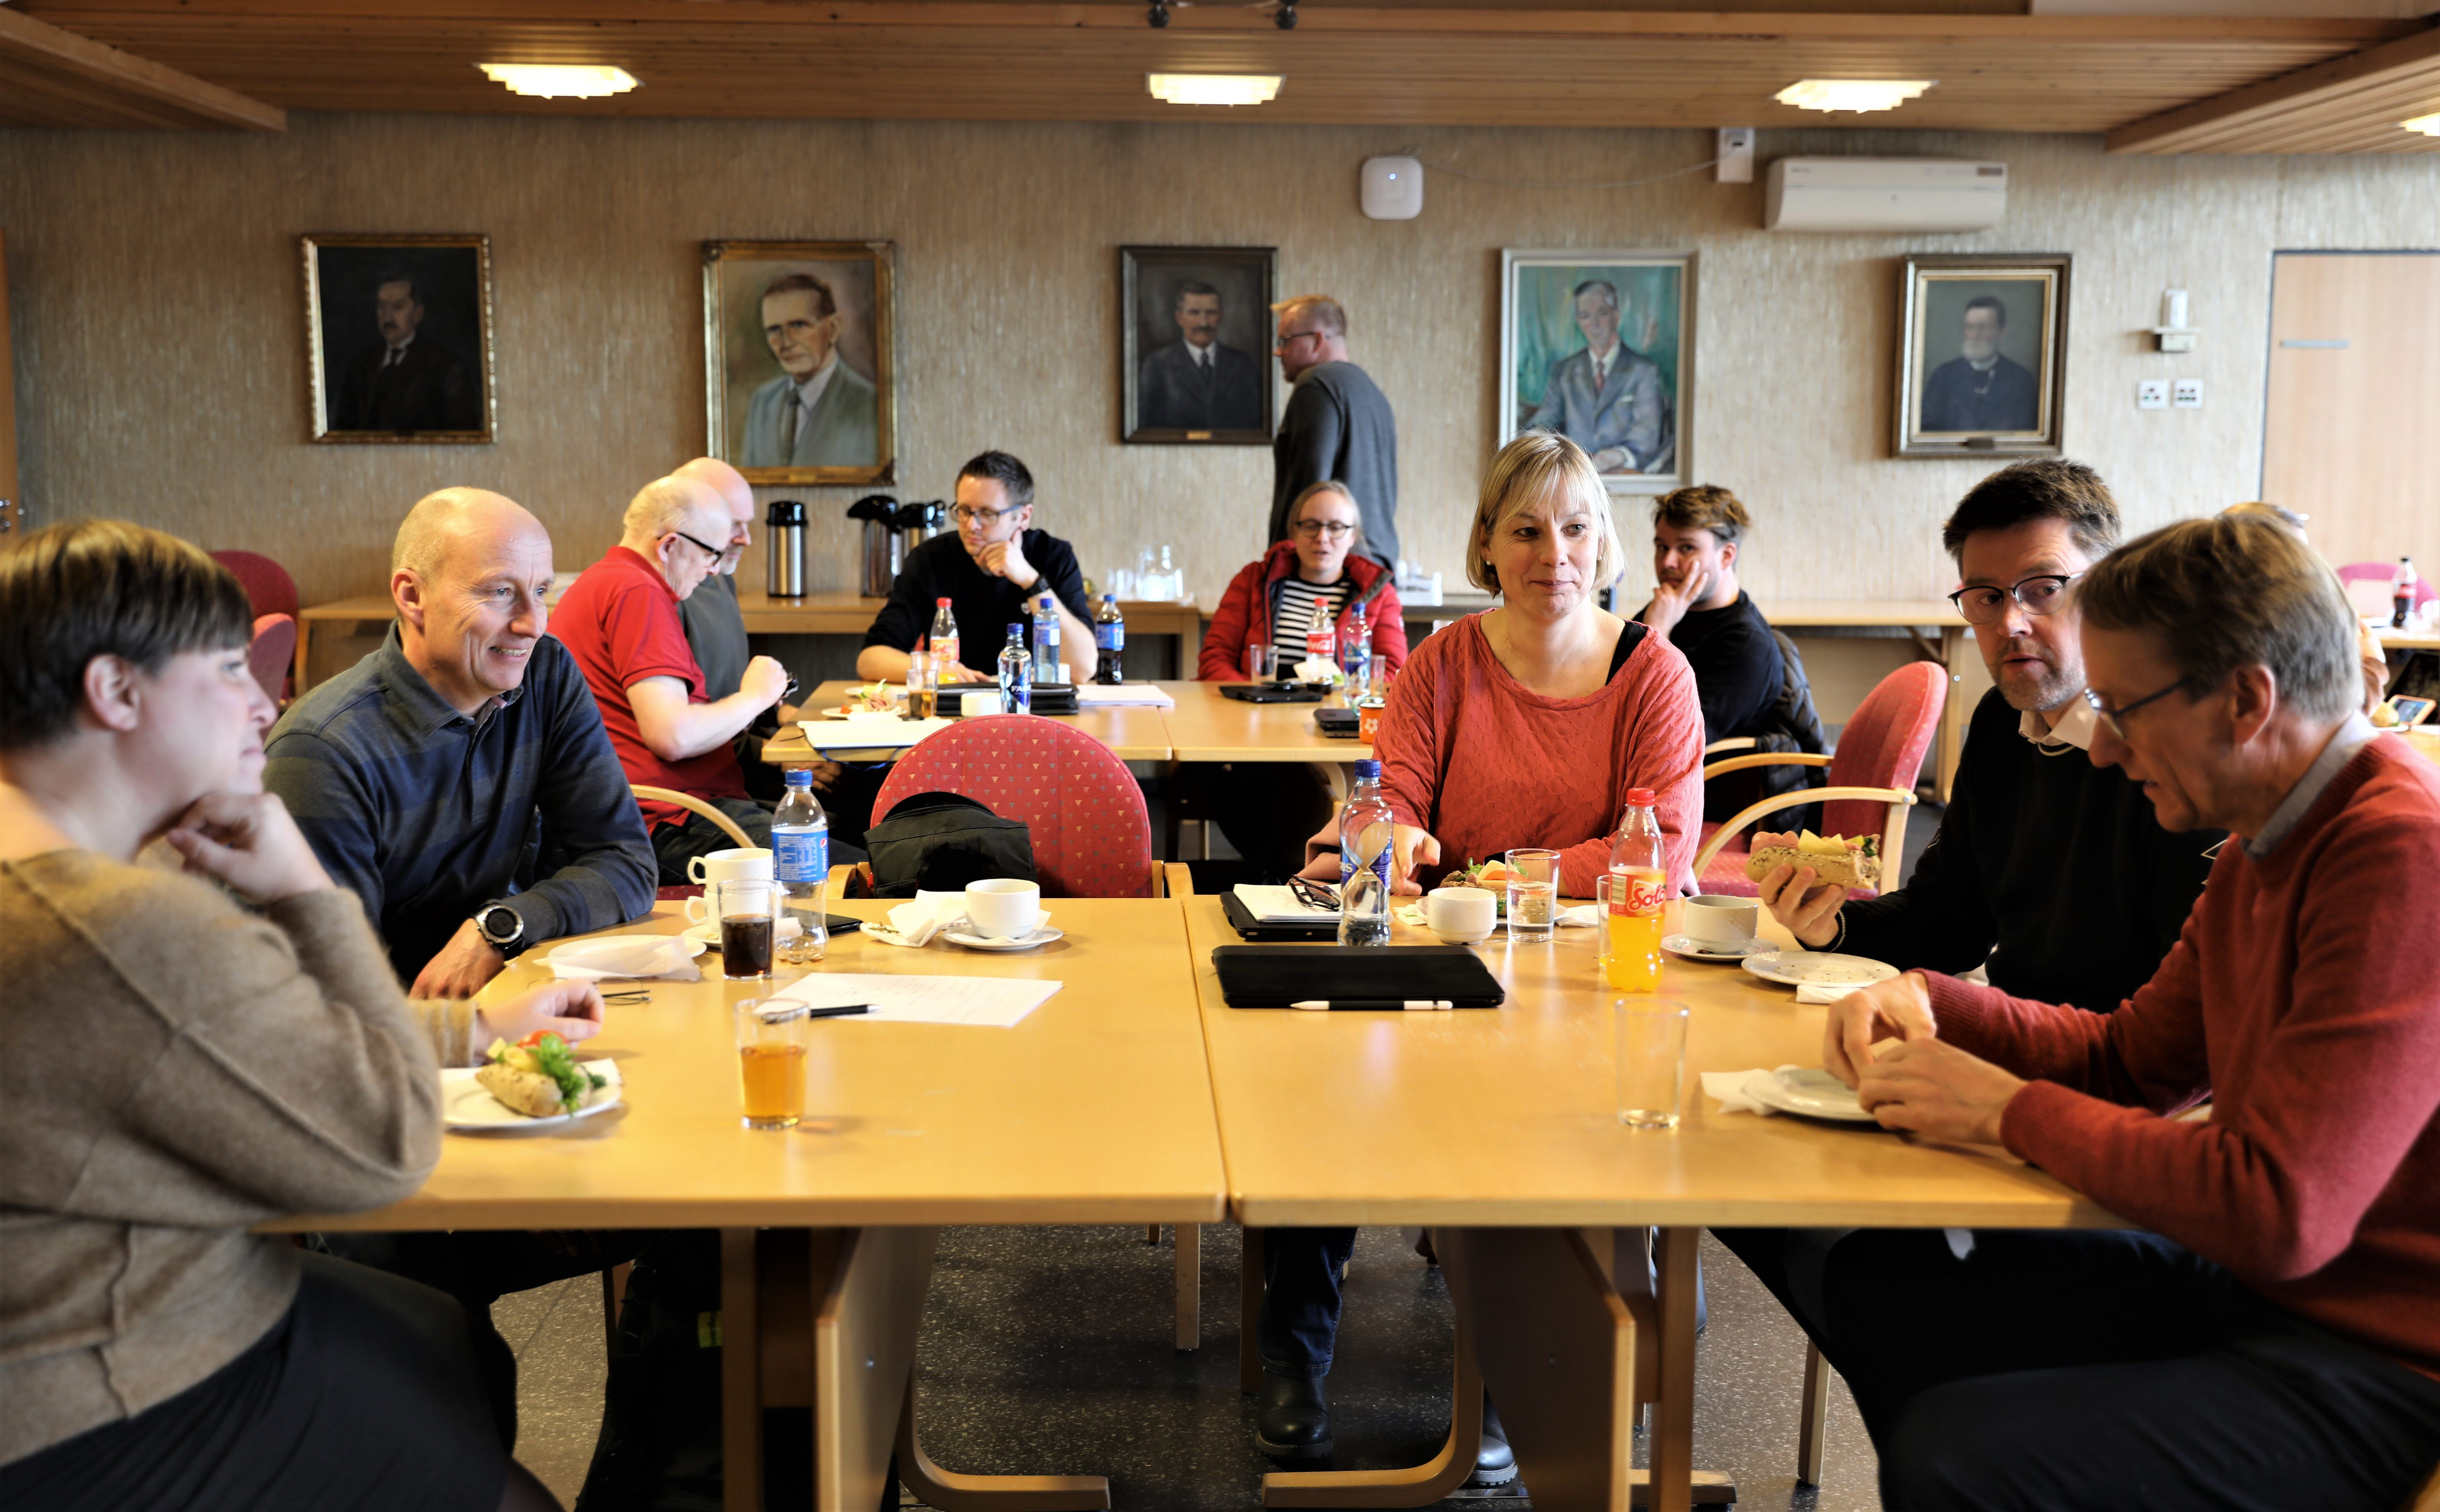 Stor interesse for KS Folkevalgtprogram